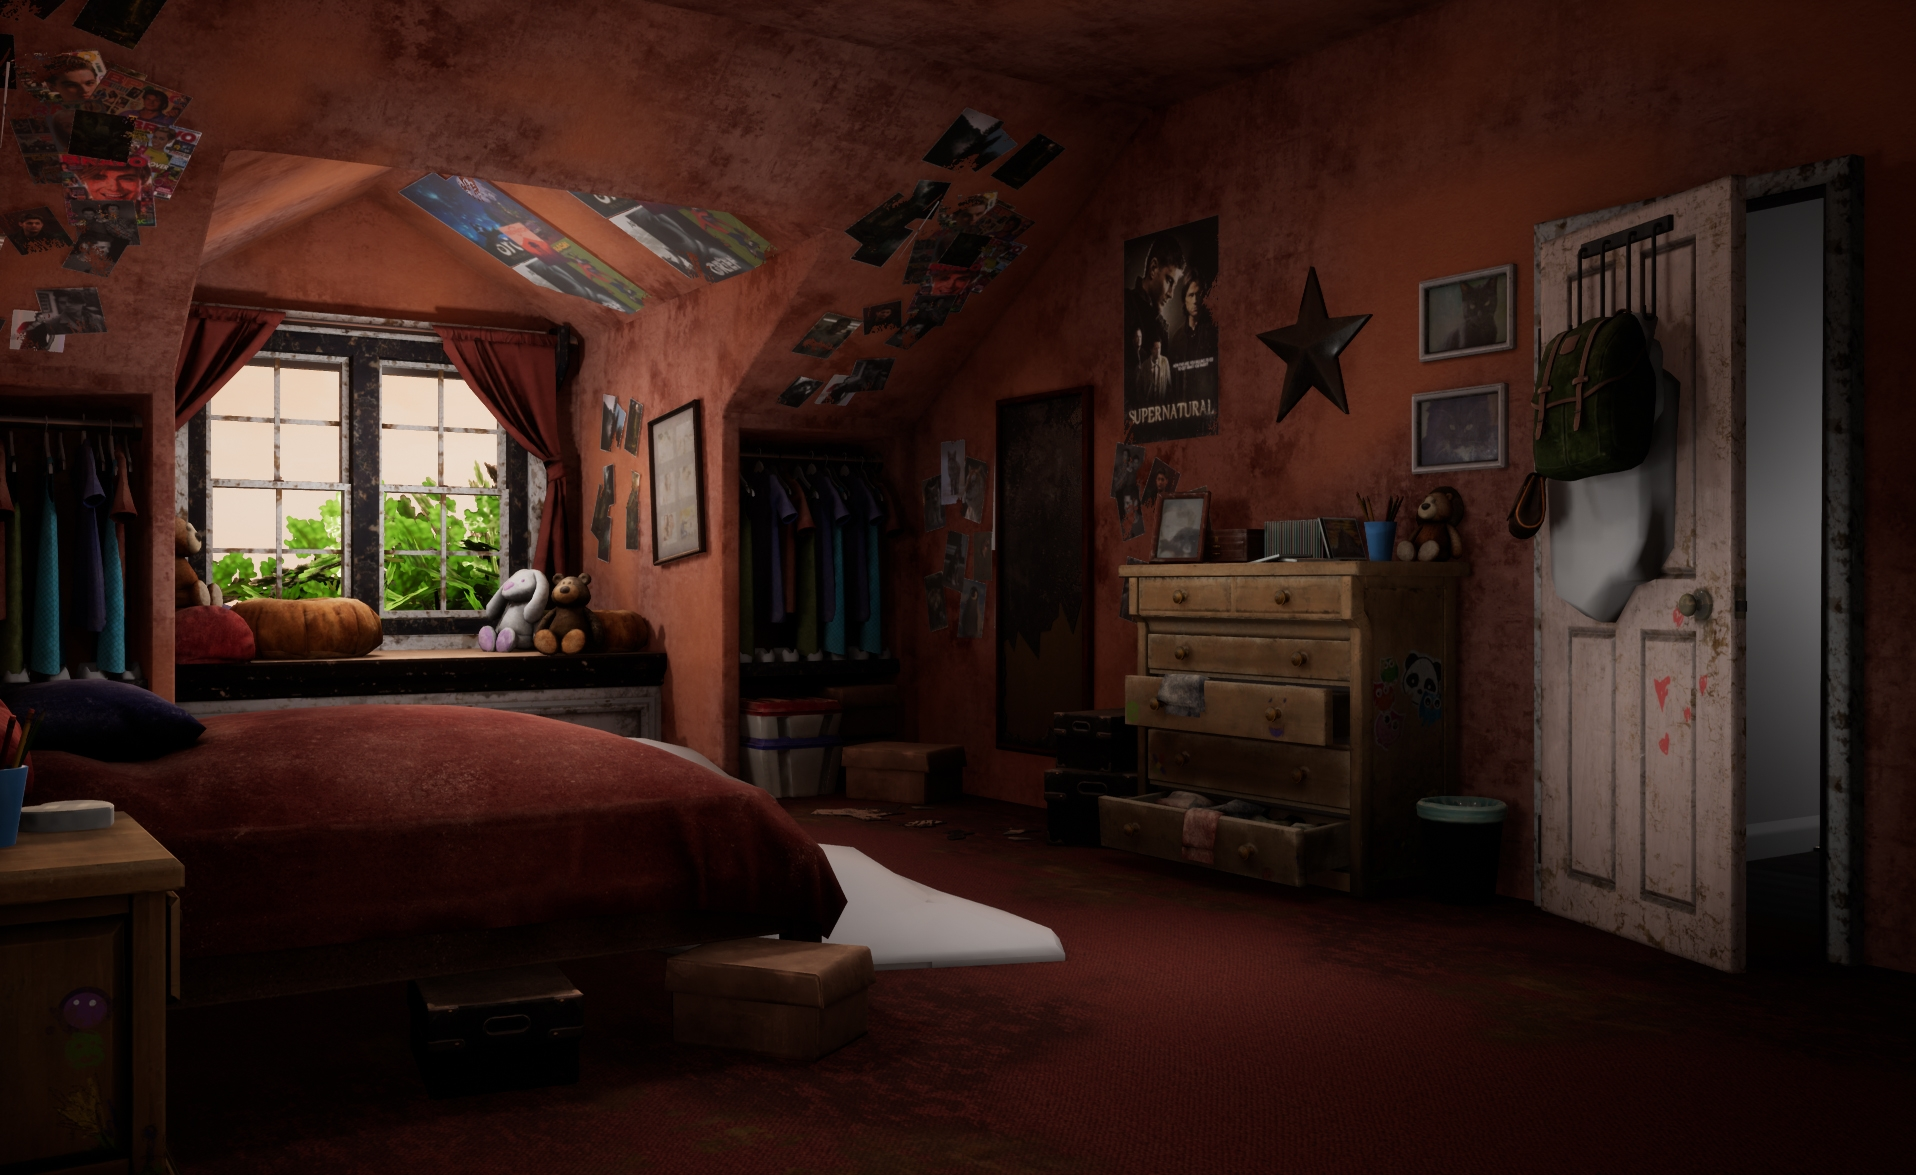 Here is what The Last of Us could have looked like in Unreal